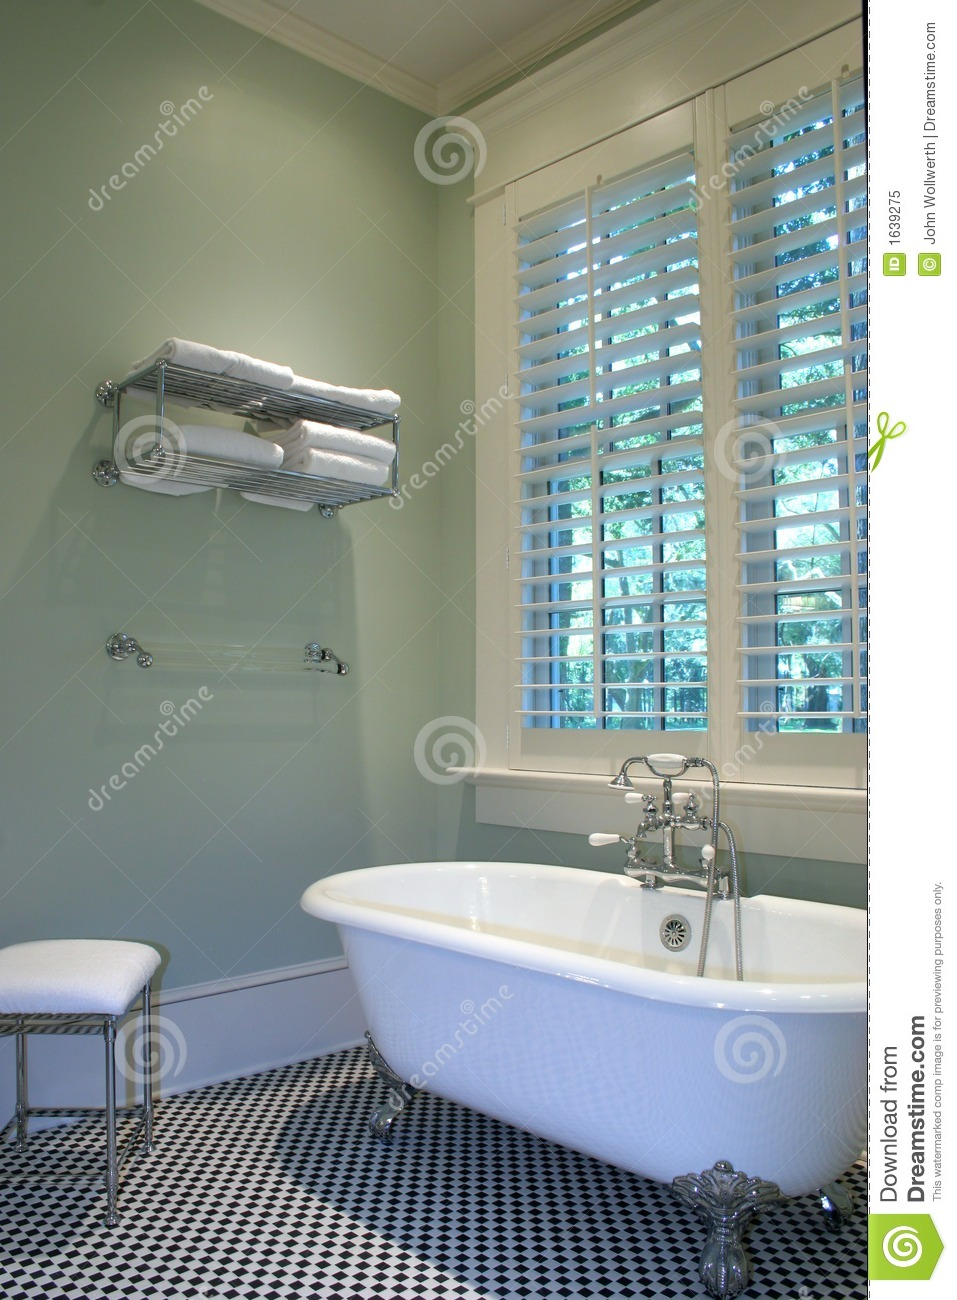 retro bathroom royalty free stock photo